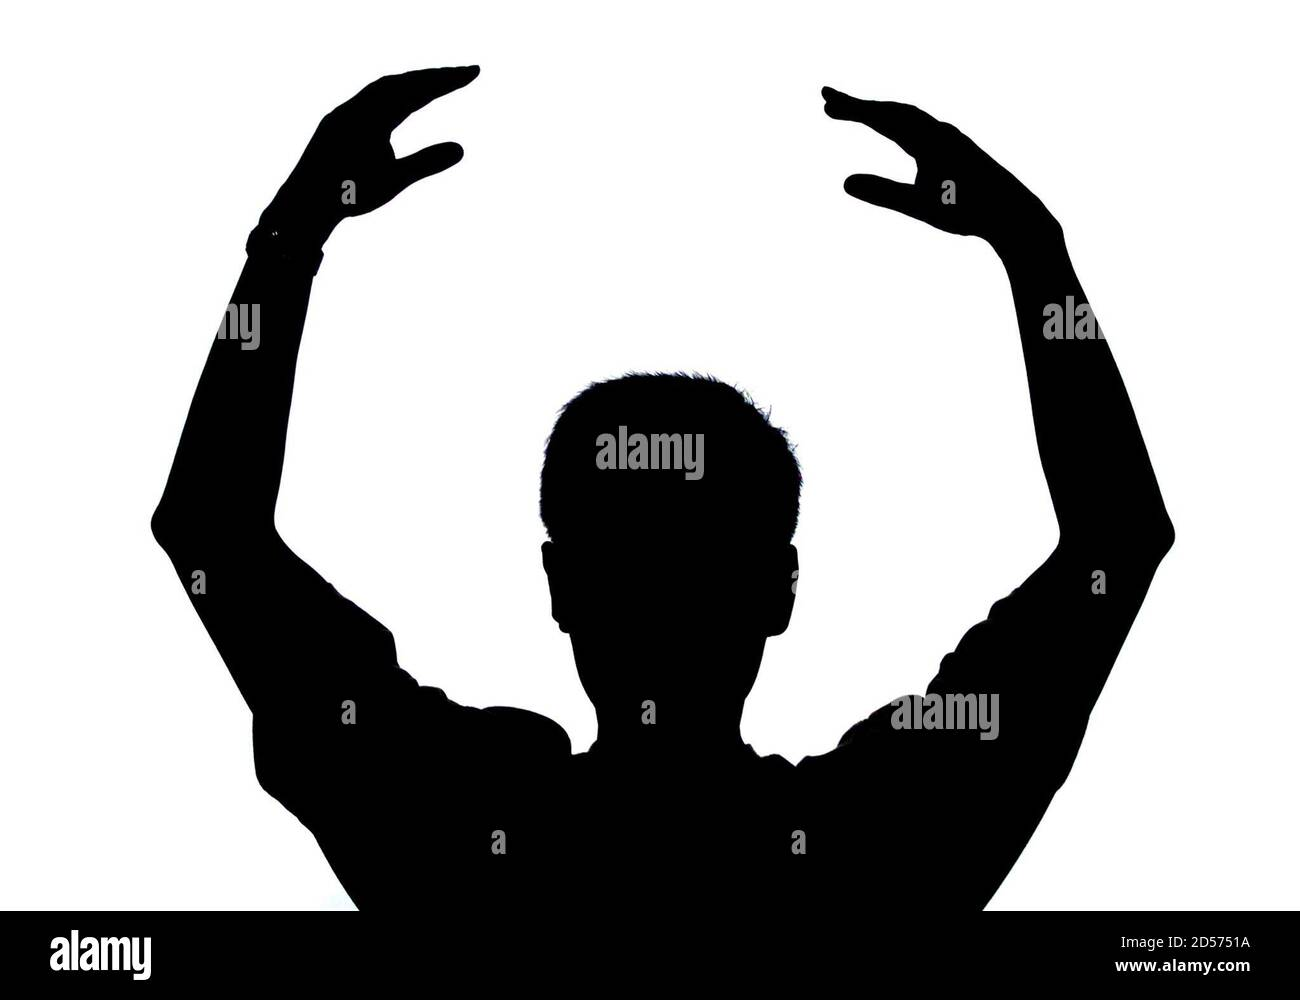 A member of the banned Falun Gong is silhouetted as he performs breathing exercises at a private place in Beijing August 8. China, waging a war of words against the spiritual movement that claims 100 million members, labelled it a very dangerous cult on Tuesday. China outlawed Falun Gong on July 22, calling it an illegal organisation that corrupted the people's minds and sabotaged stability. A large number of Falun Gong members are continuing to practise at private places despite the government ban.  ASW/CC Stock Photo